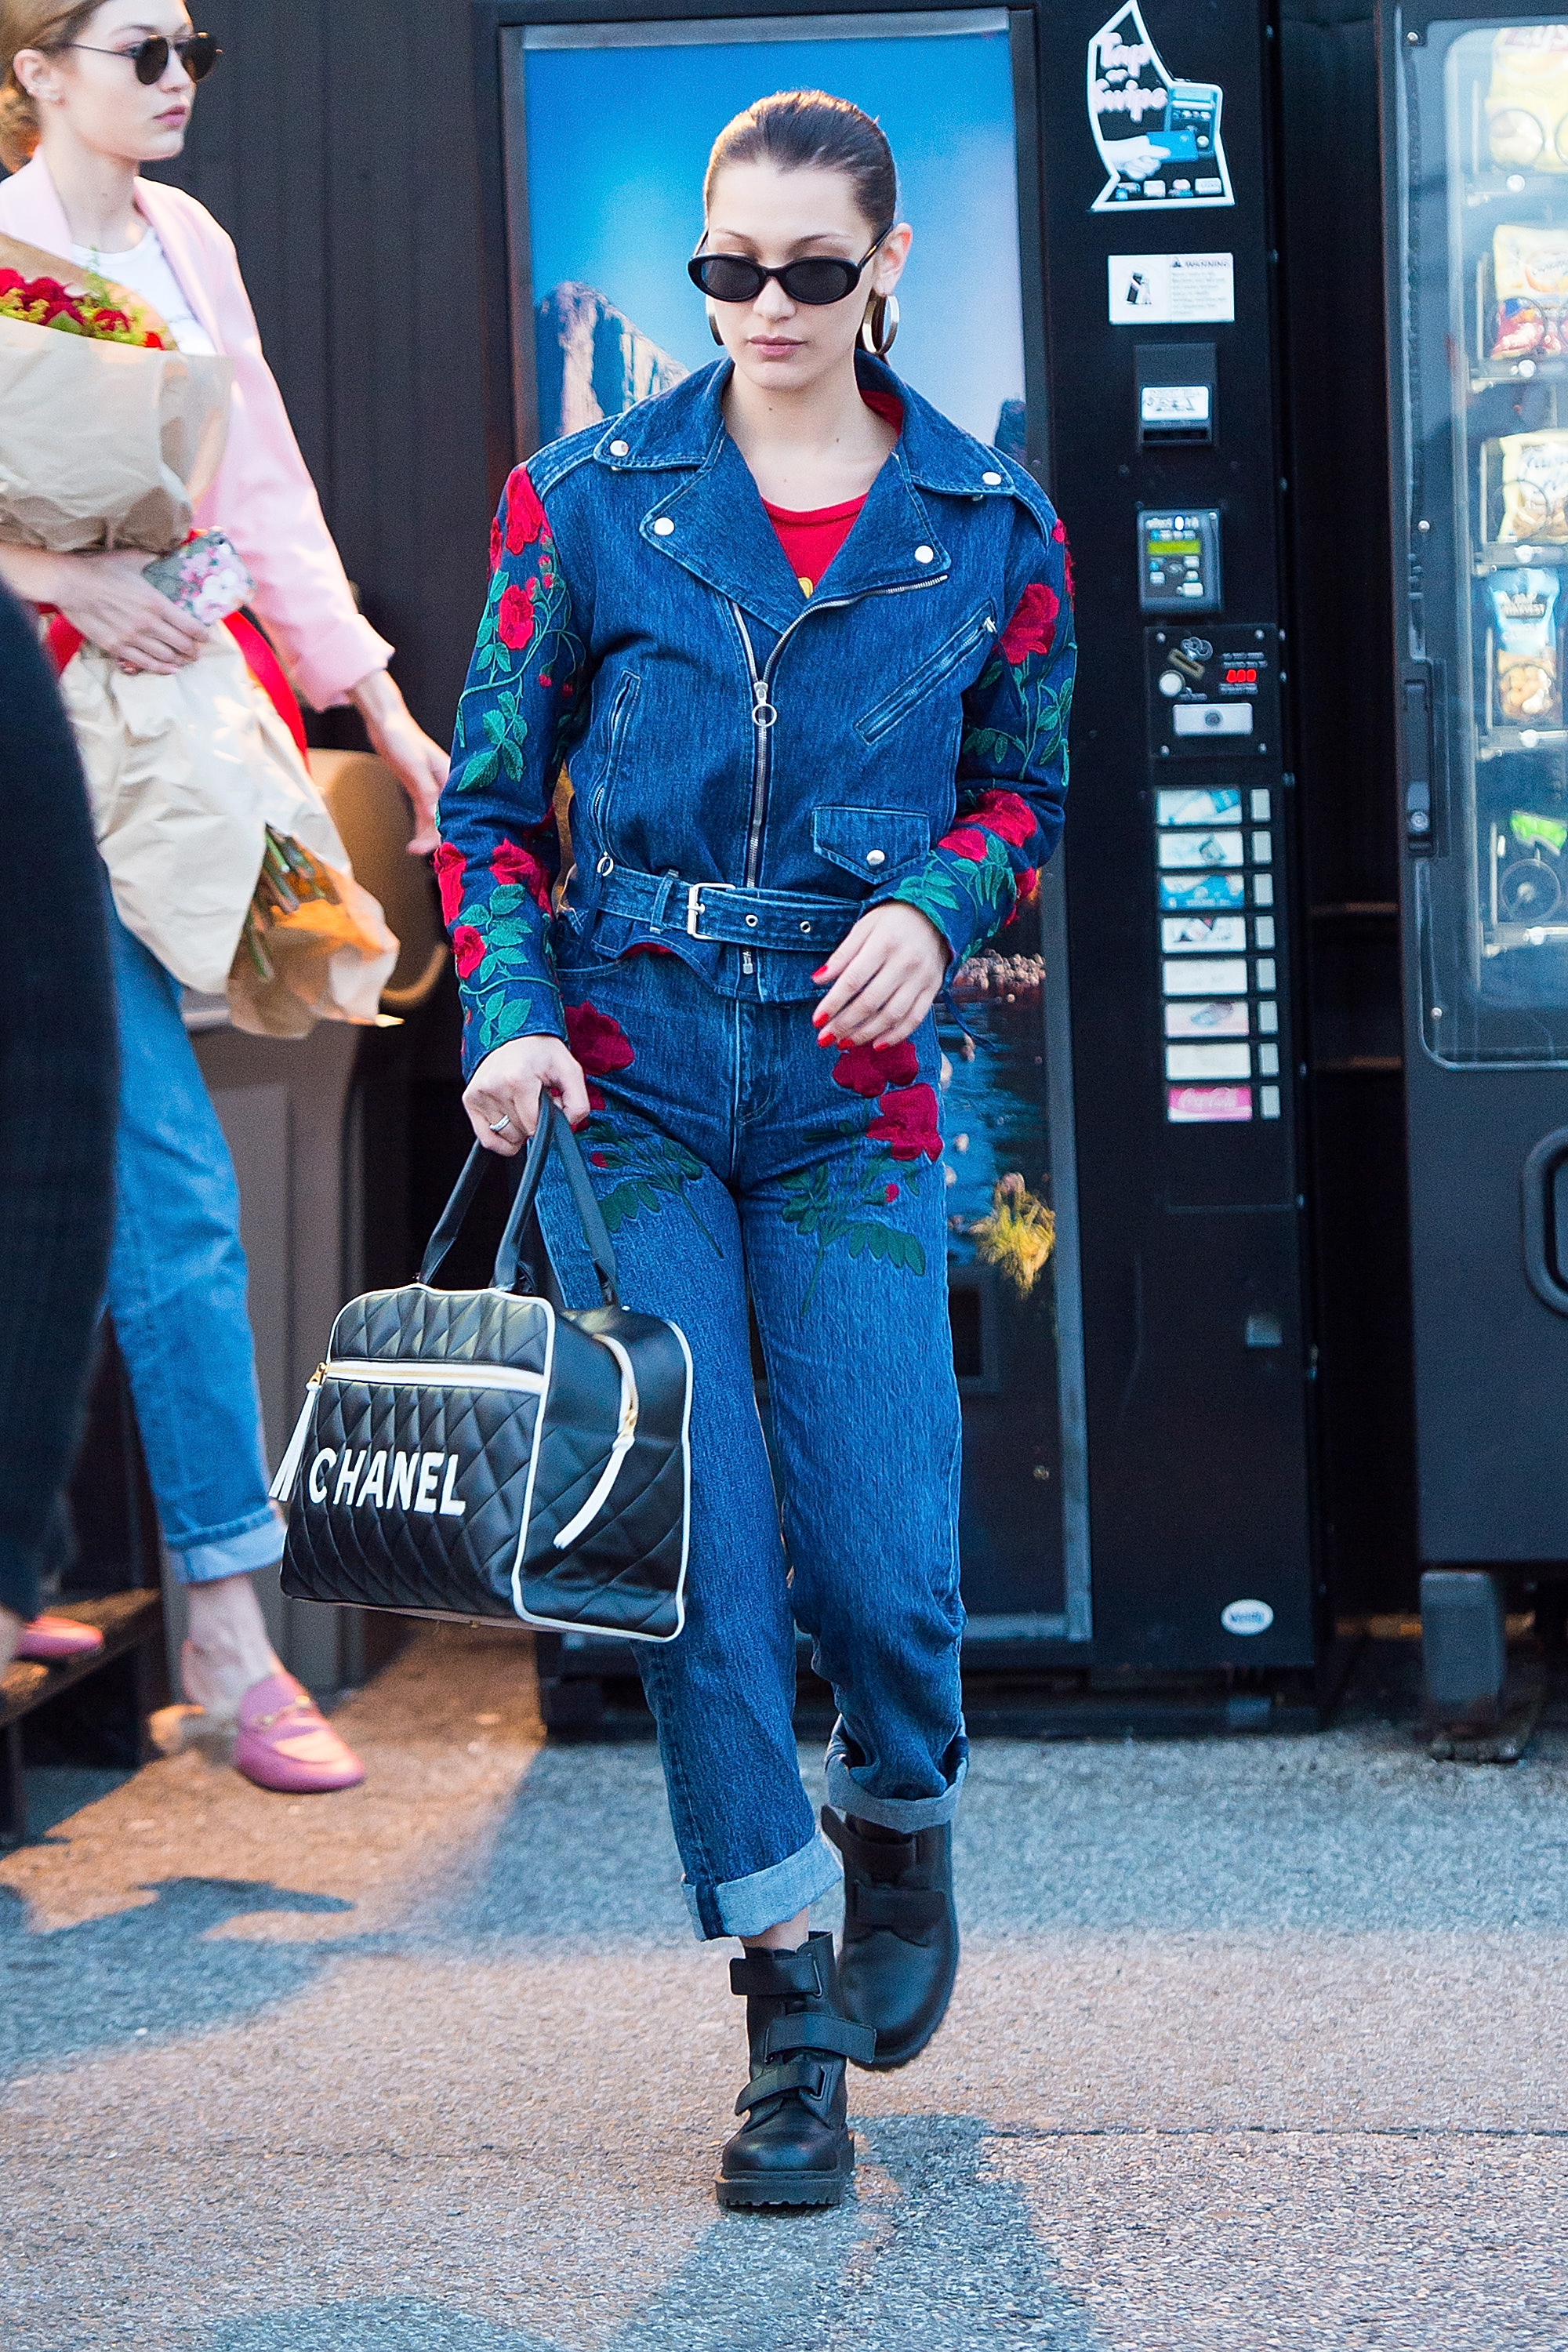 NEW YORK, NY - APRIL 23:  Model Bella Hadid is seen in Midtown on April 23, 2017 in New York City.  (Photo by Gotham/GC Images)